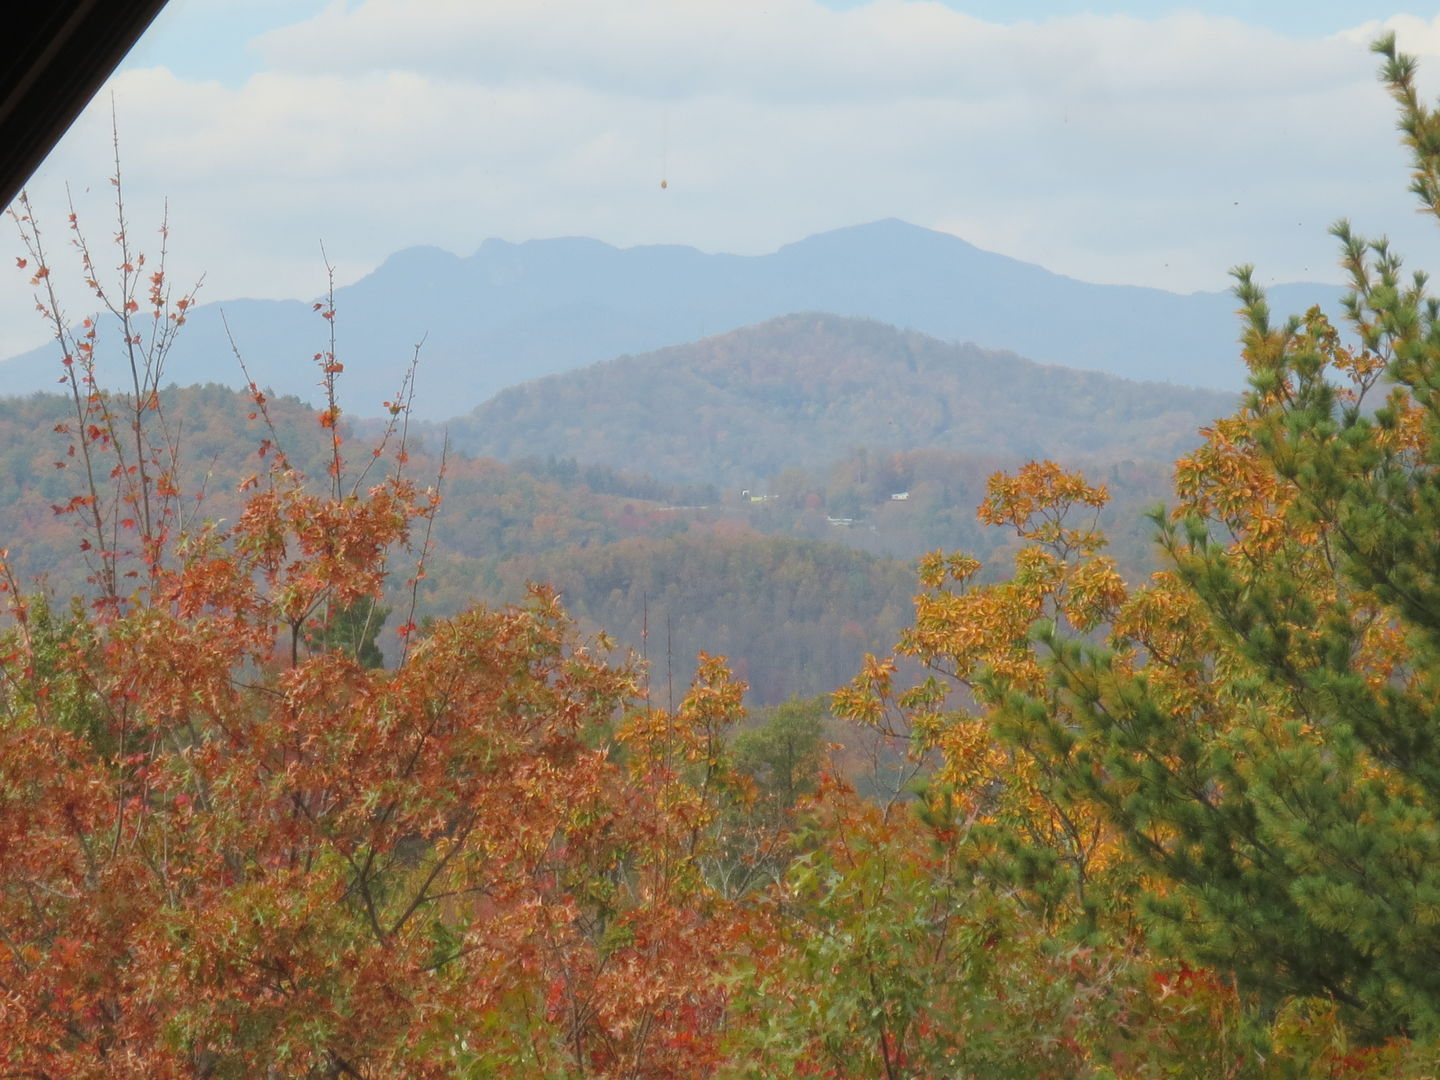 Perfect place to be to enjoy fall foliage!